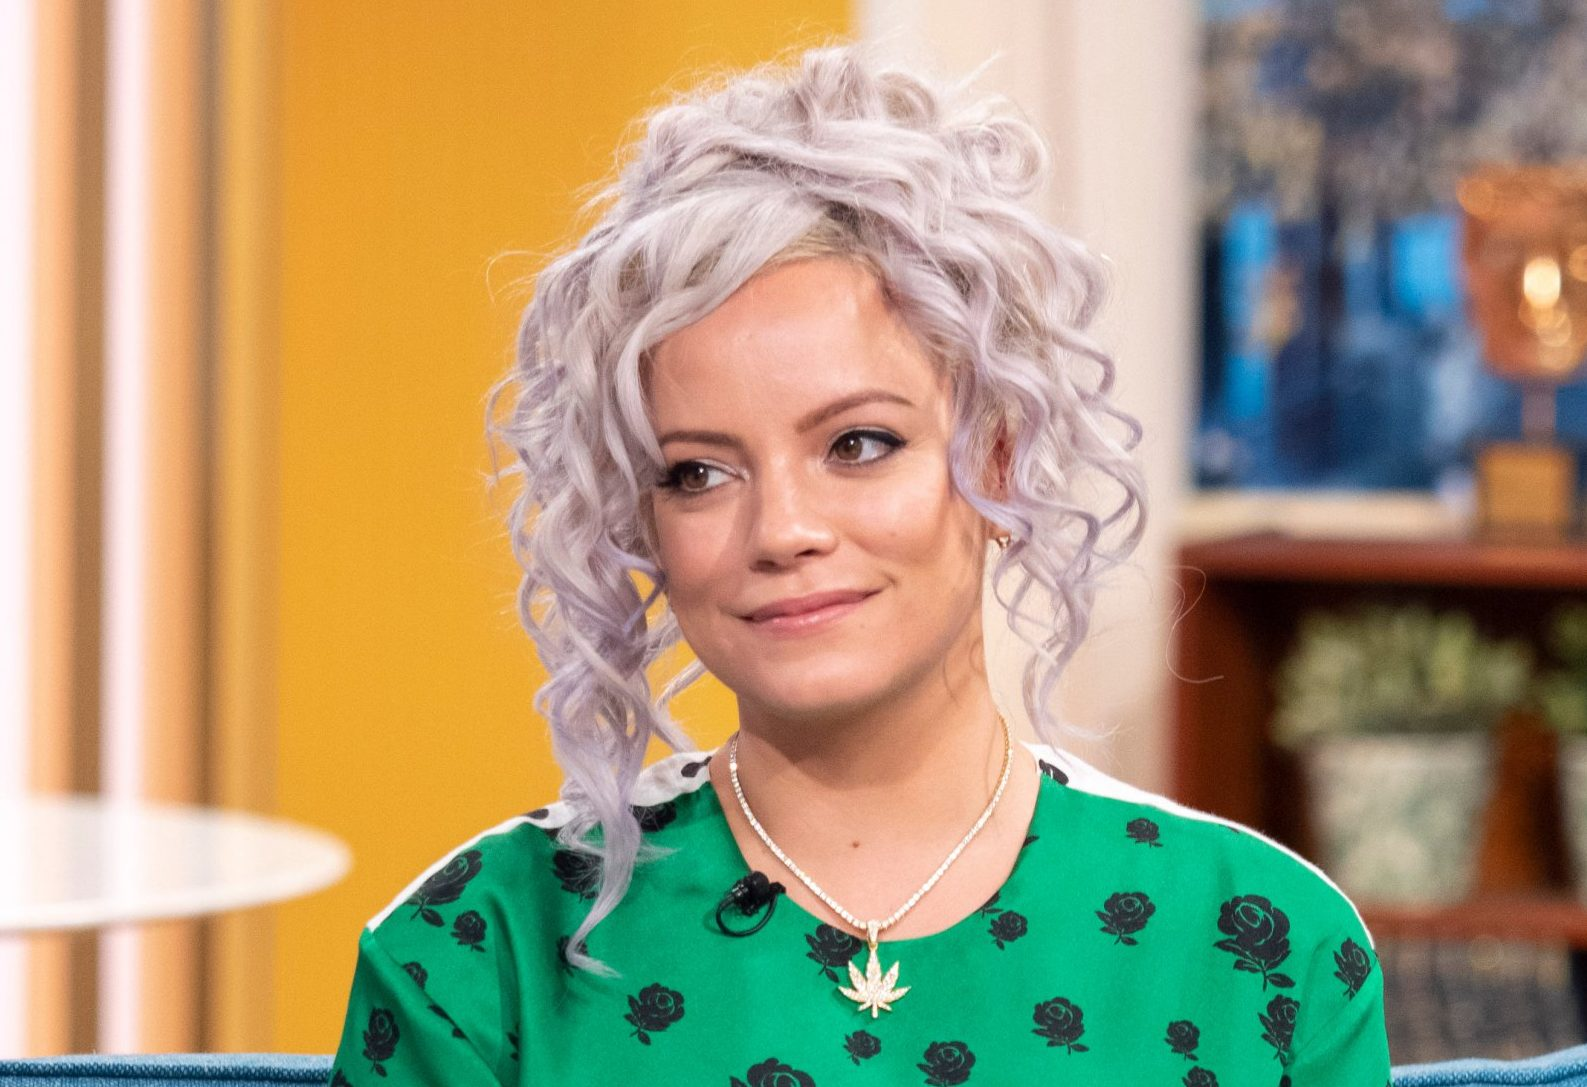 Editorial use only Mandatory Credit: Photo by Ken McKay/ITV/REX (9990724bq) Lily Allen 'This Morning' TV show, London, UK - 23 Nov 2018 Lily Allen: My Thoughts Exactly It's the tell-all autobiography which has sparked controversy across the world. From her struggles with addiction, to joining the celebrity mile high club, Lily Allen?s ?My Thoughts Exactly? has left little to the imagination. She?s flown in today fresh from her US tour, to talk music, self-loathing and growing up in the limelight.